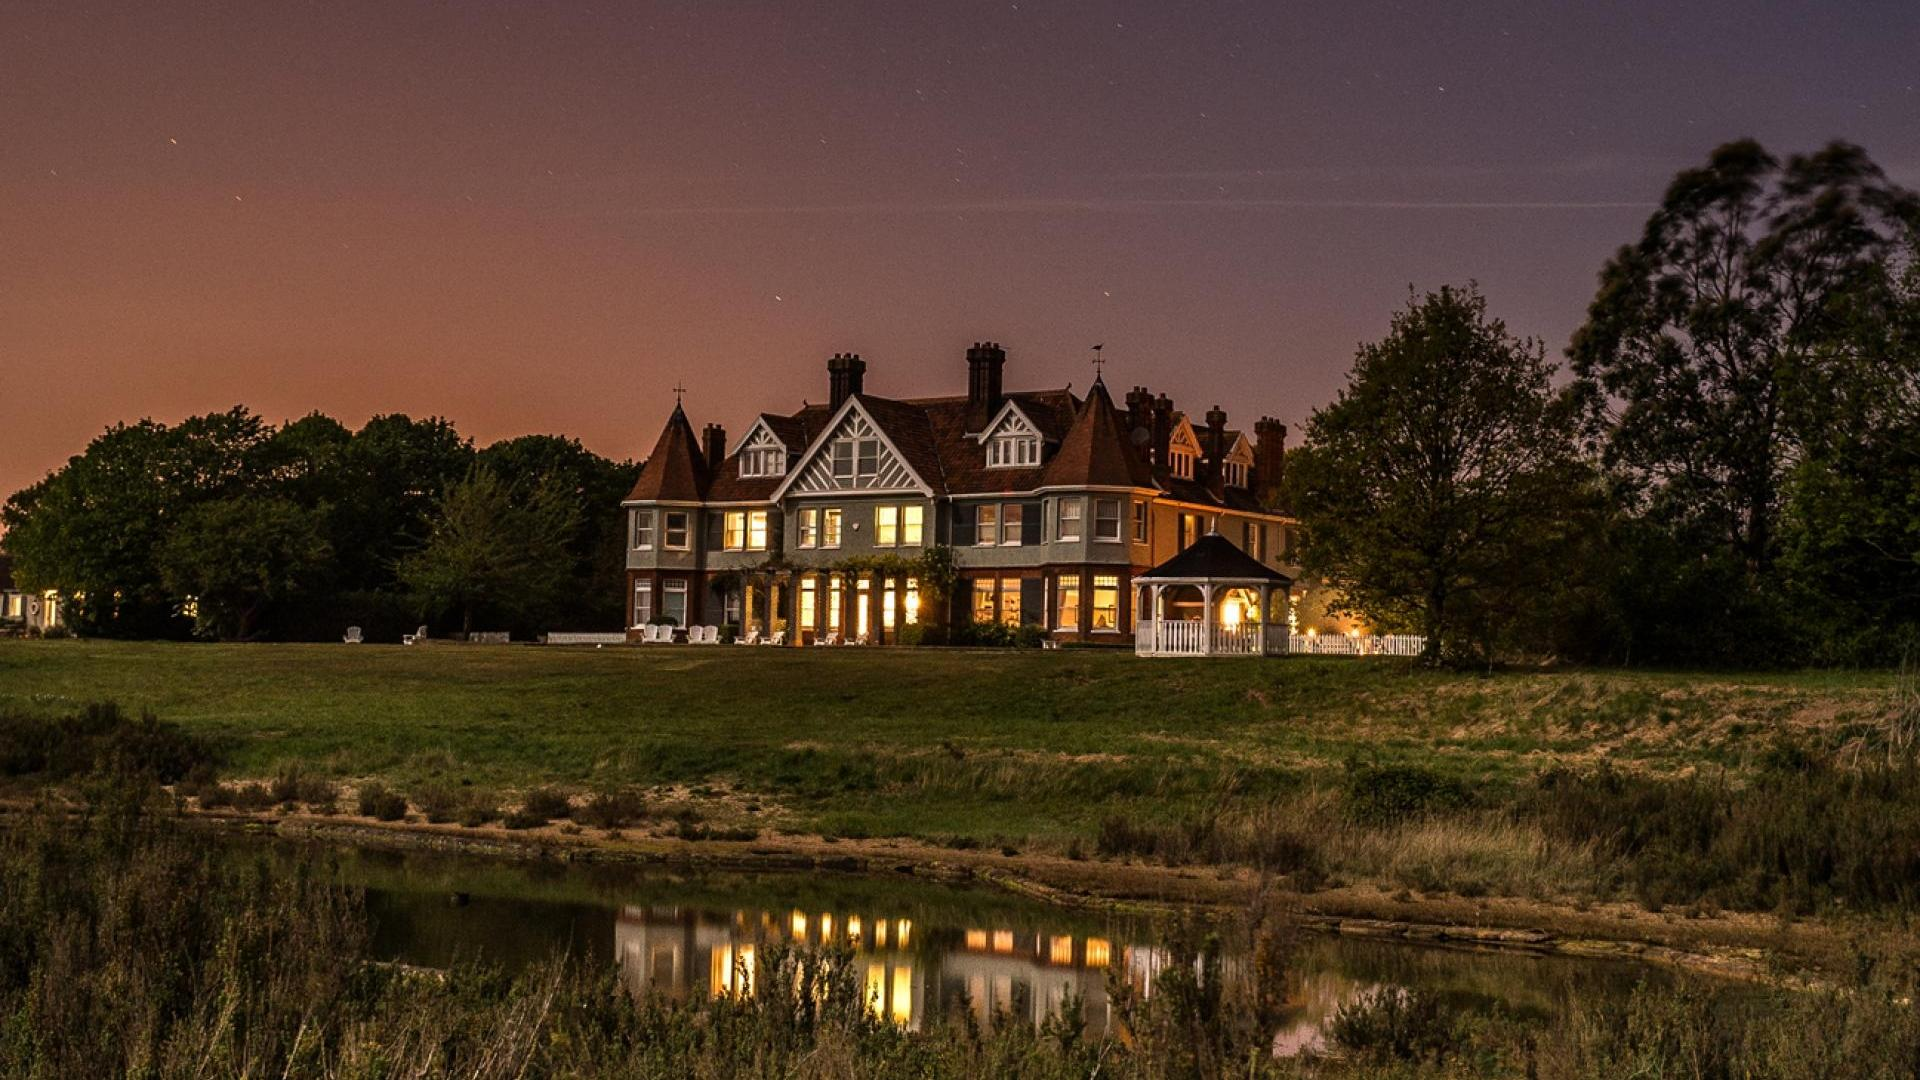 10 Bedroom Manor in Essex, United Kingdom